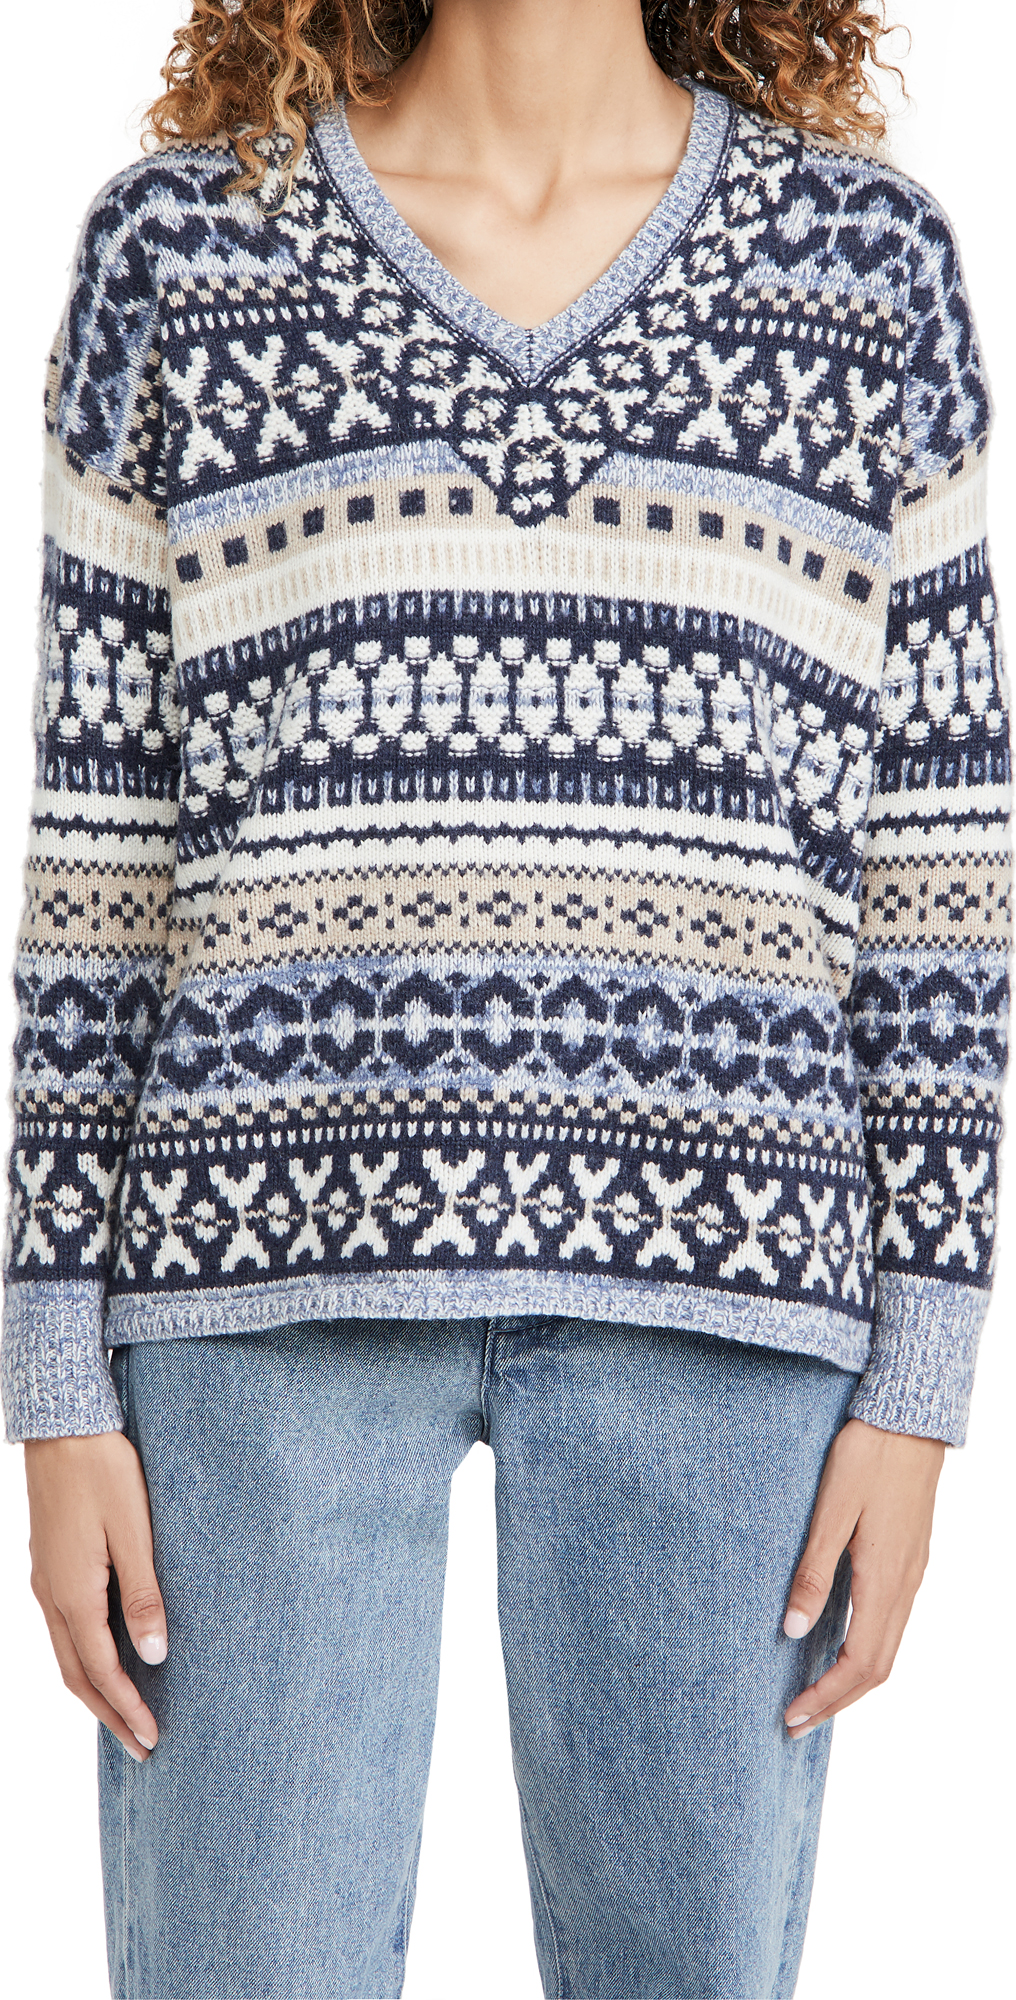 Madewell Fair Isle Dancer V Neck Pullover